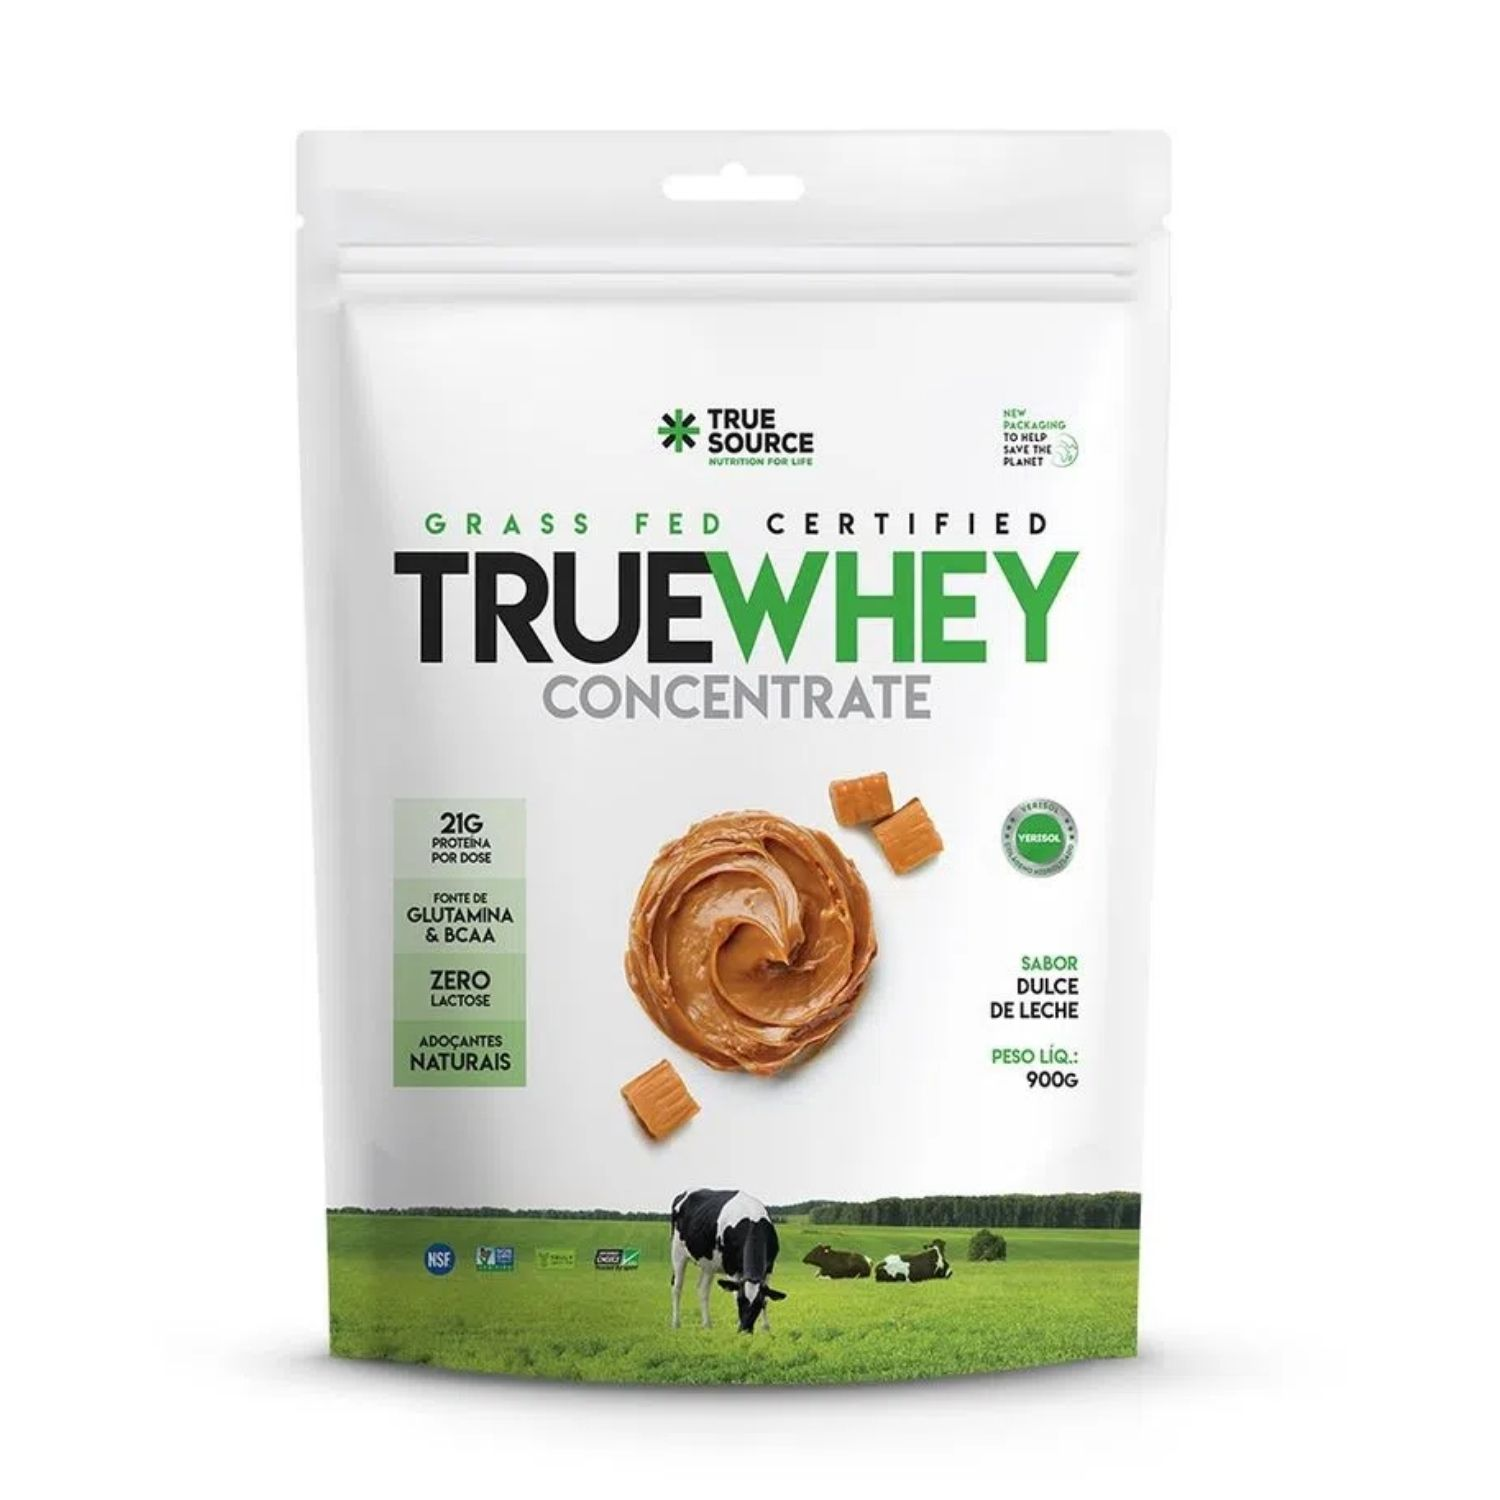 True Whey Concentrate 900g Refil True Source